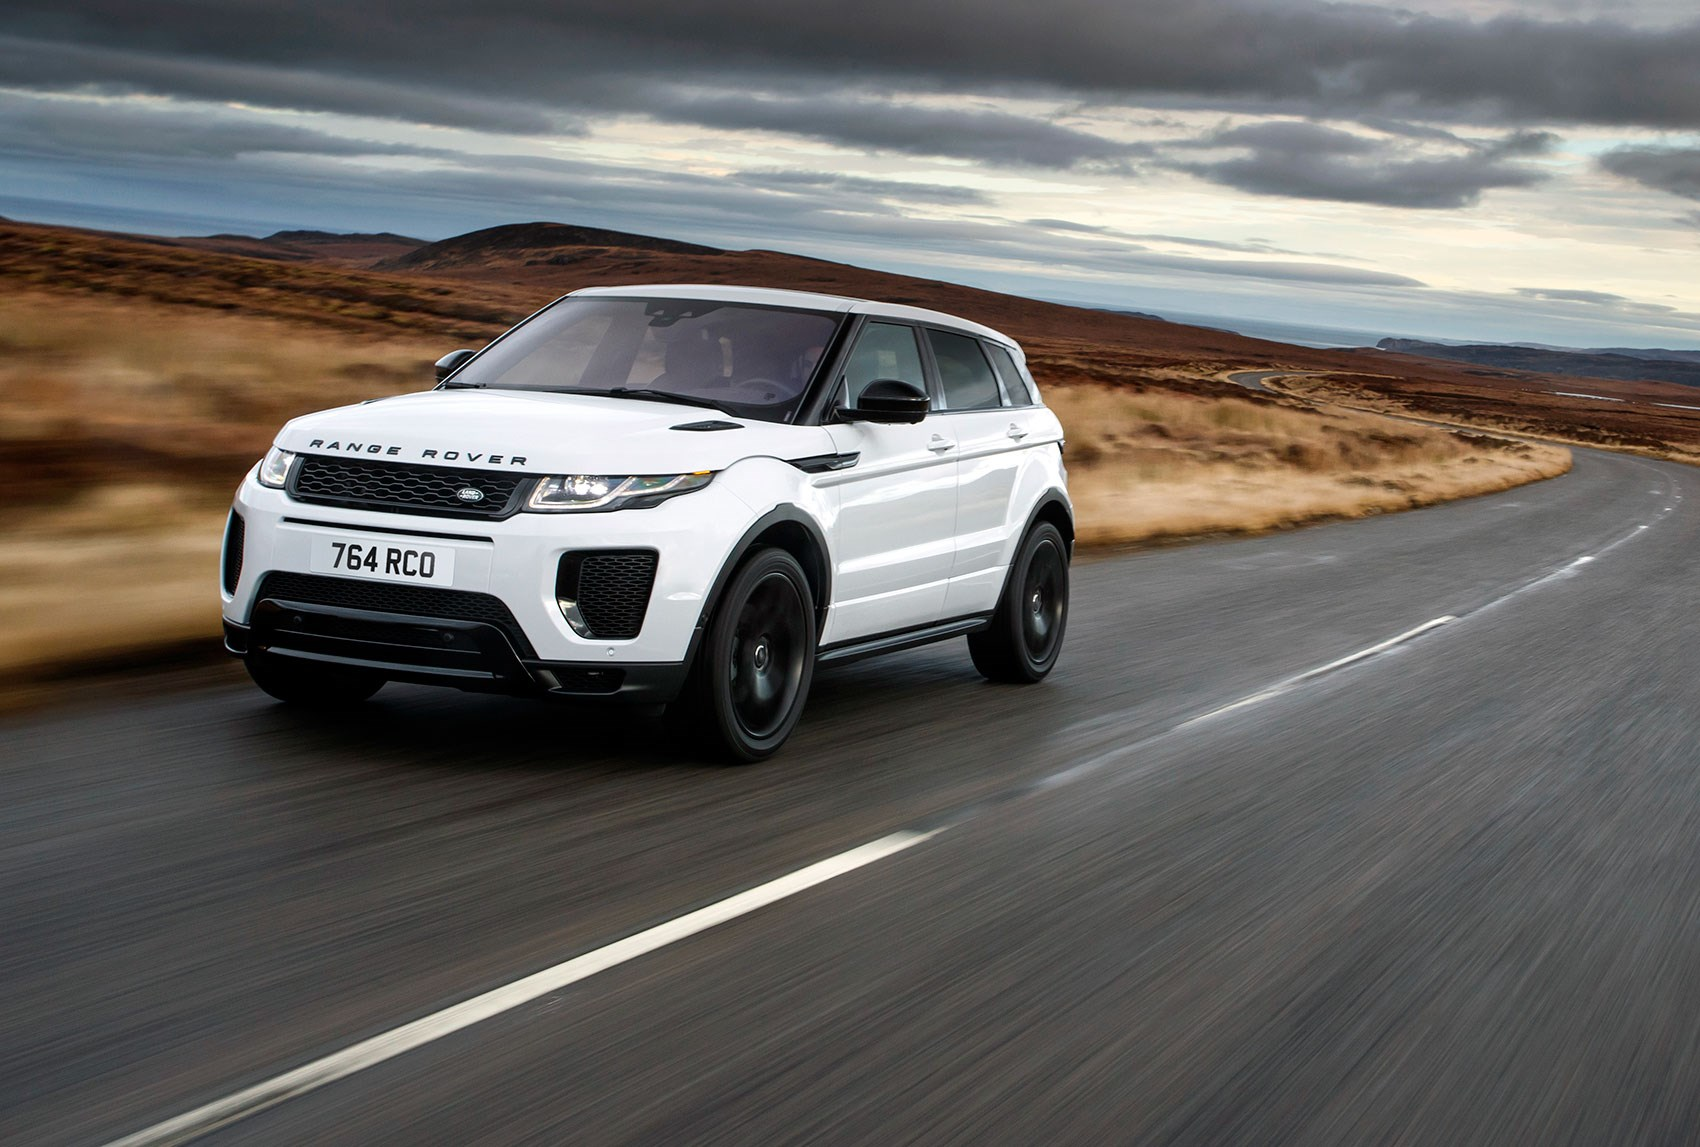 The Newly Updated 2018 Model Year Range Rover Evoque